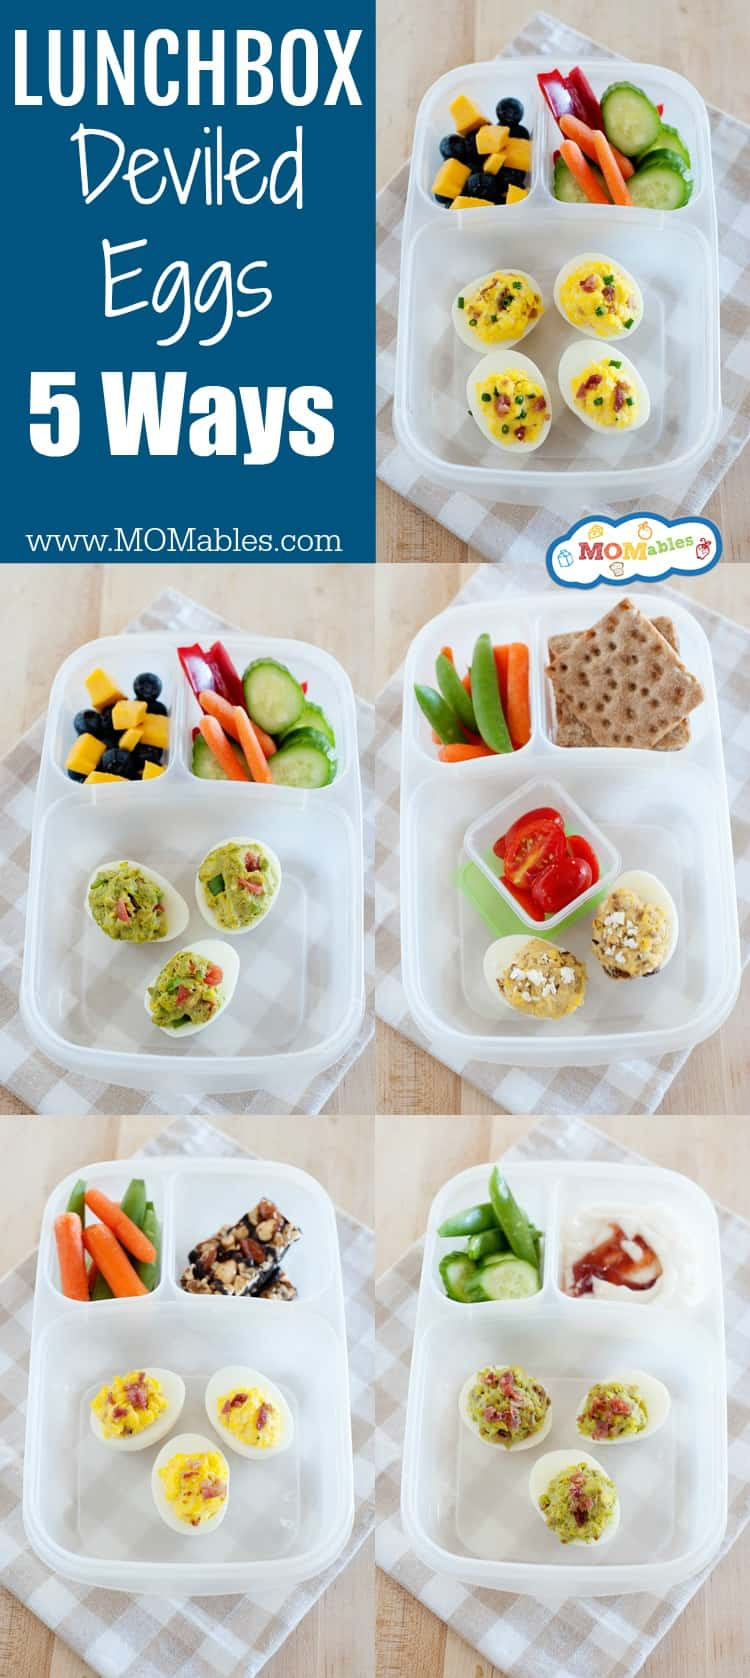 Healthy bento lunches with deviled eggs five ways. These aren't your classic deviled eggs, so you will want to be sure to try all five of them out!